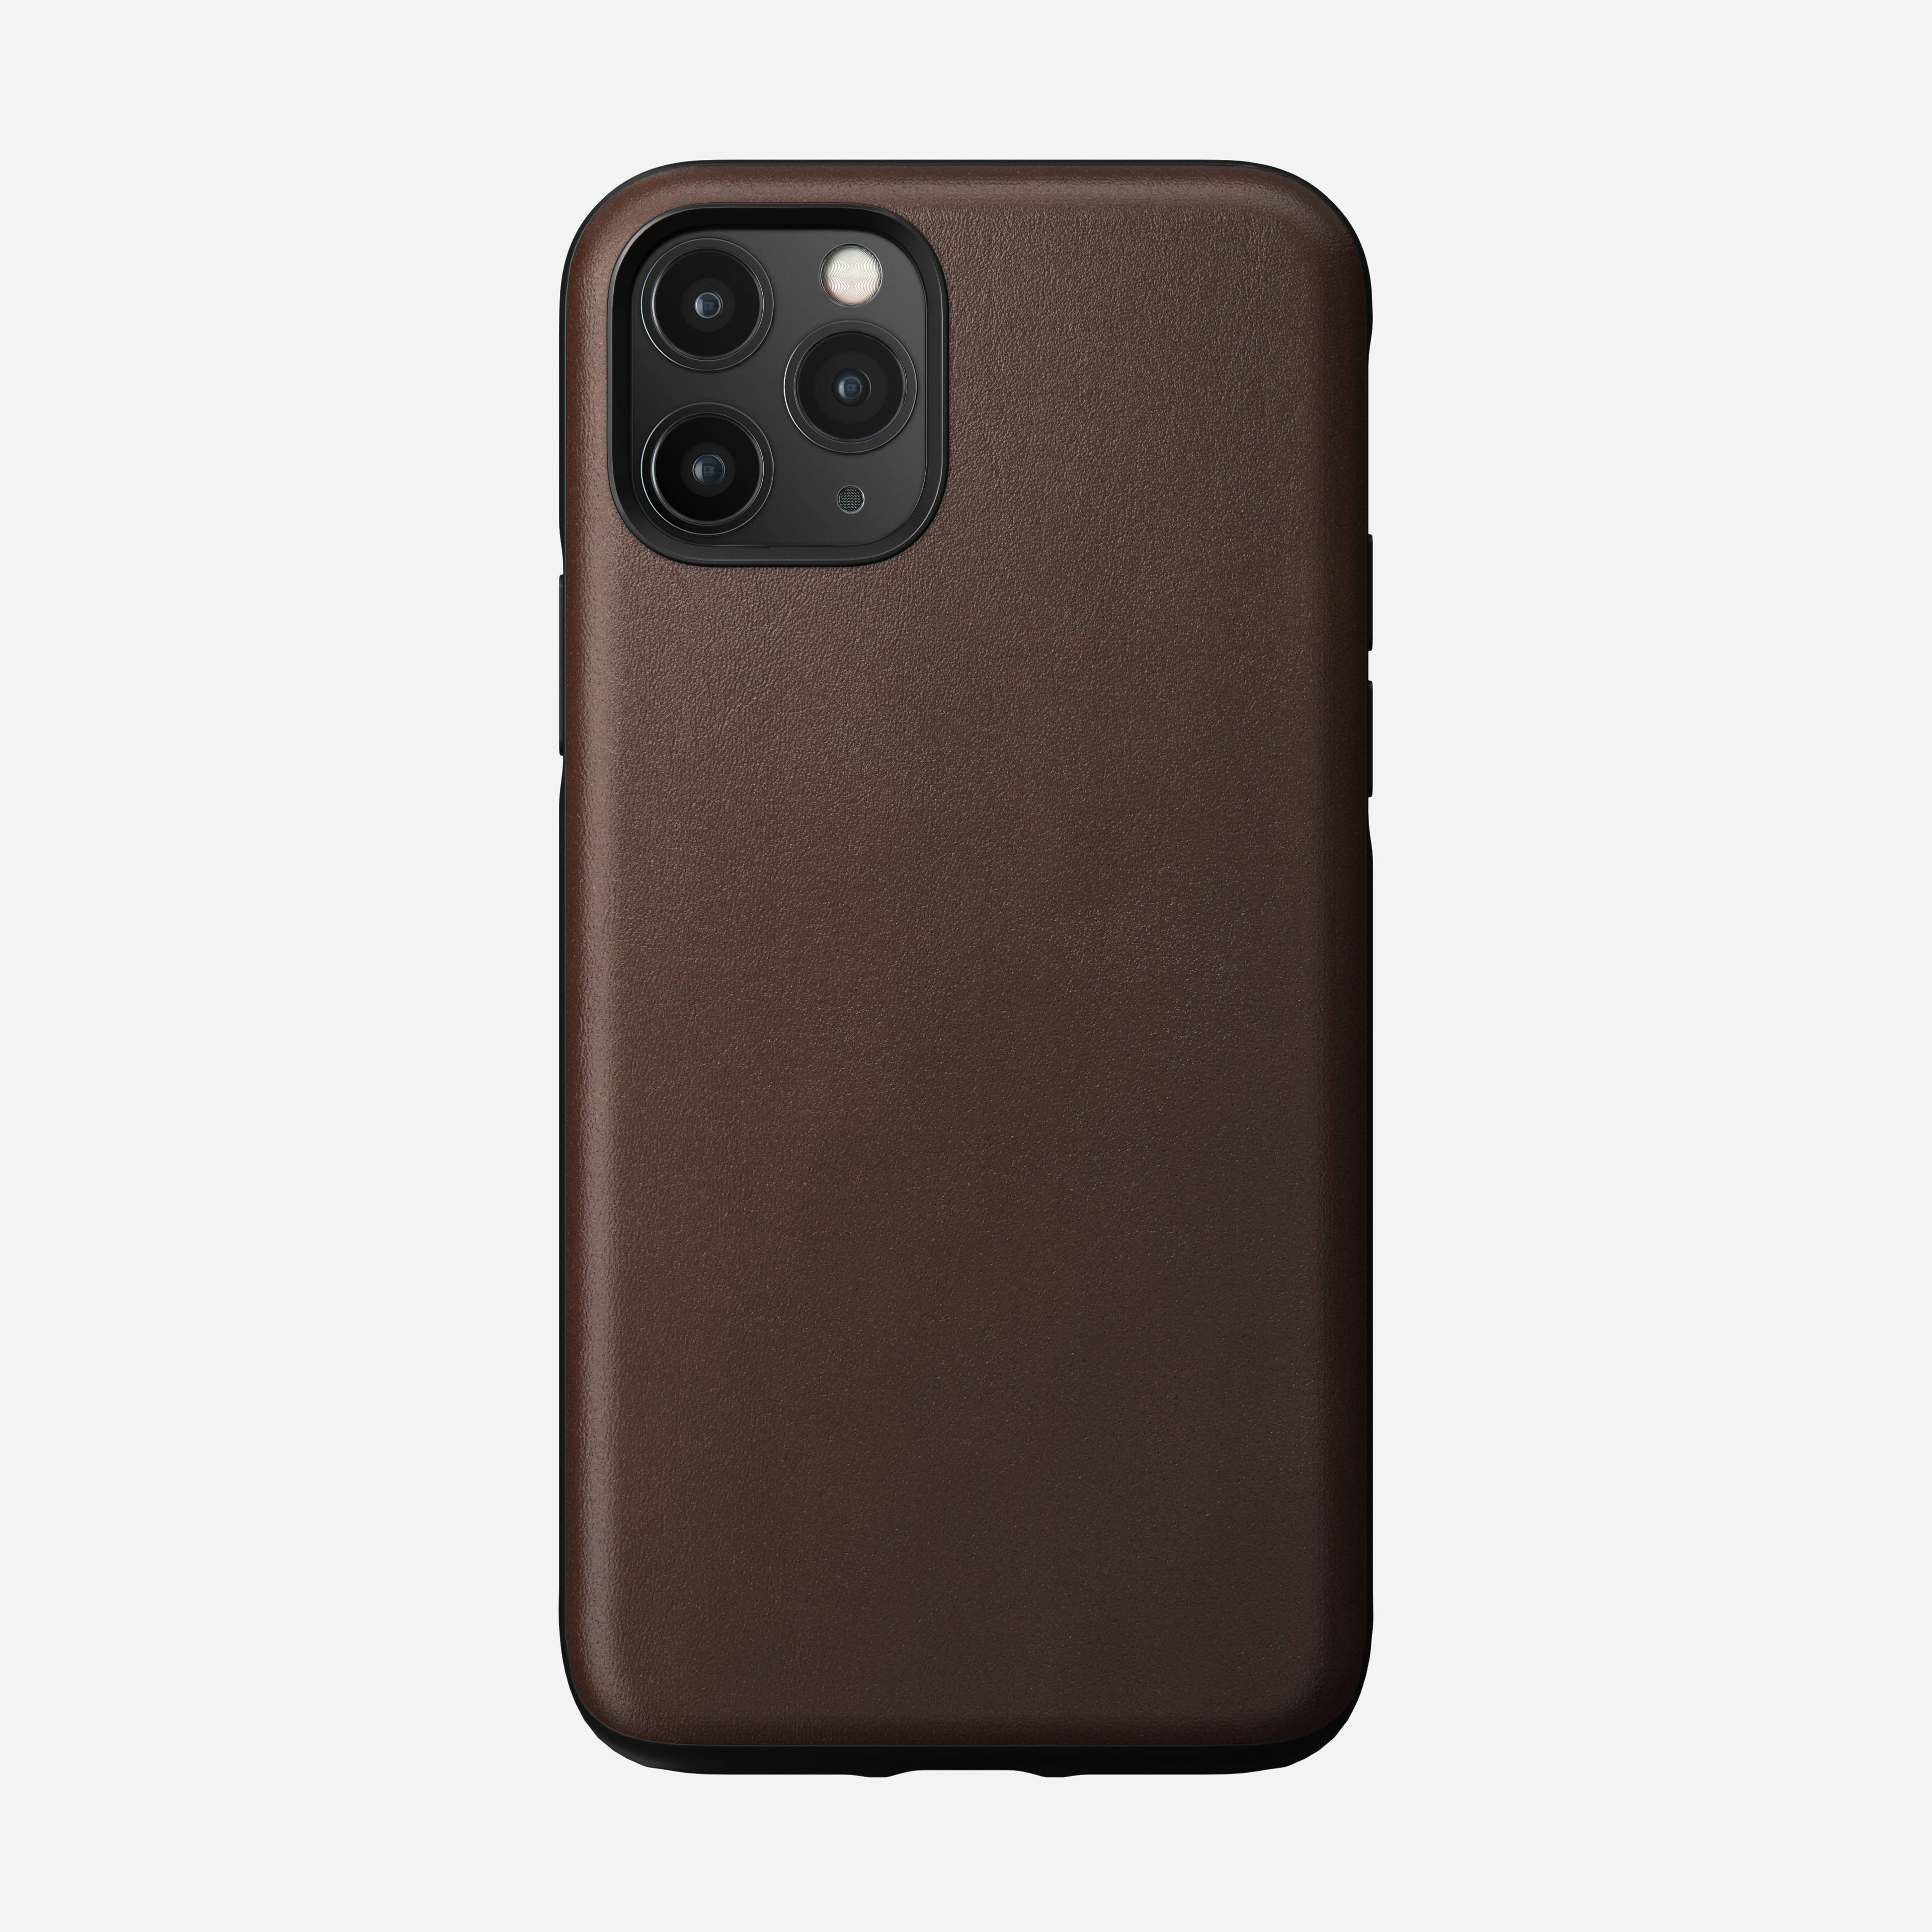 Rugged case rustic brown iphone 11 pro